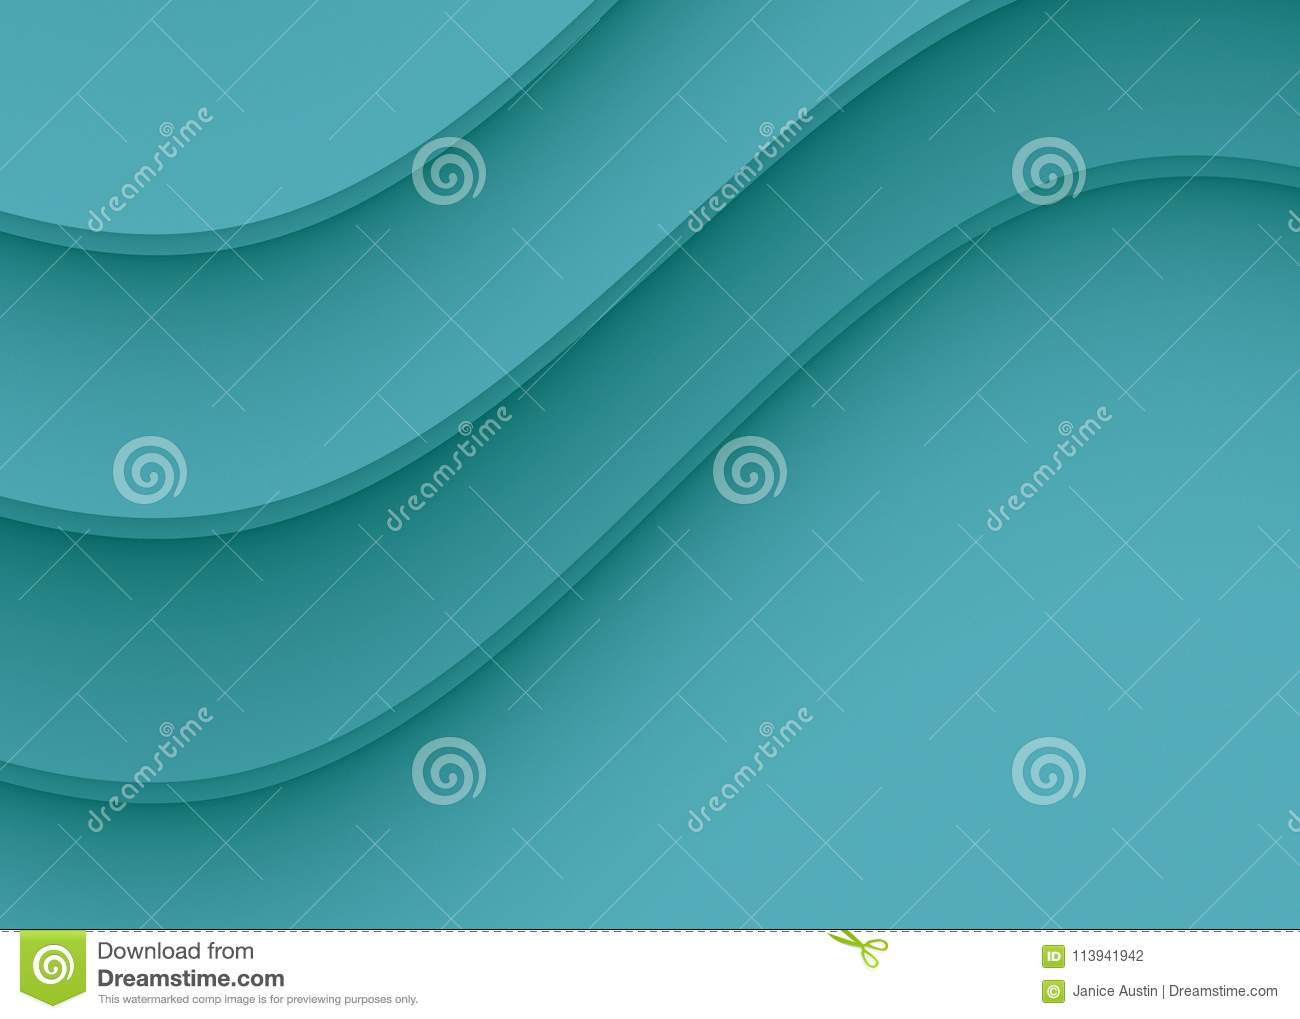 Elegant sapphire blue smooth gentle curves abstract background design